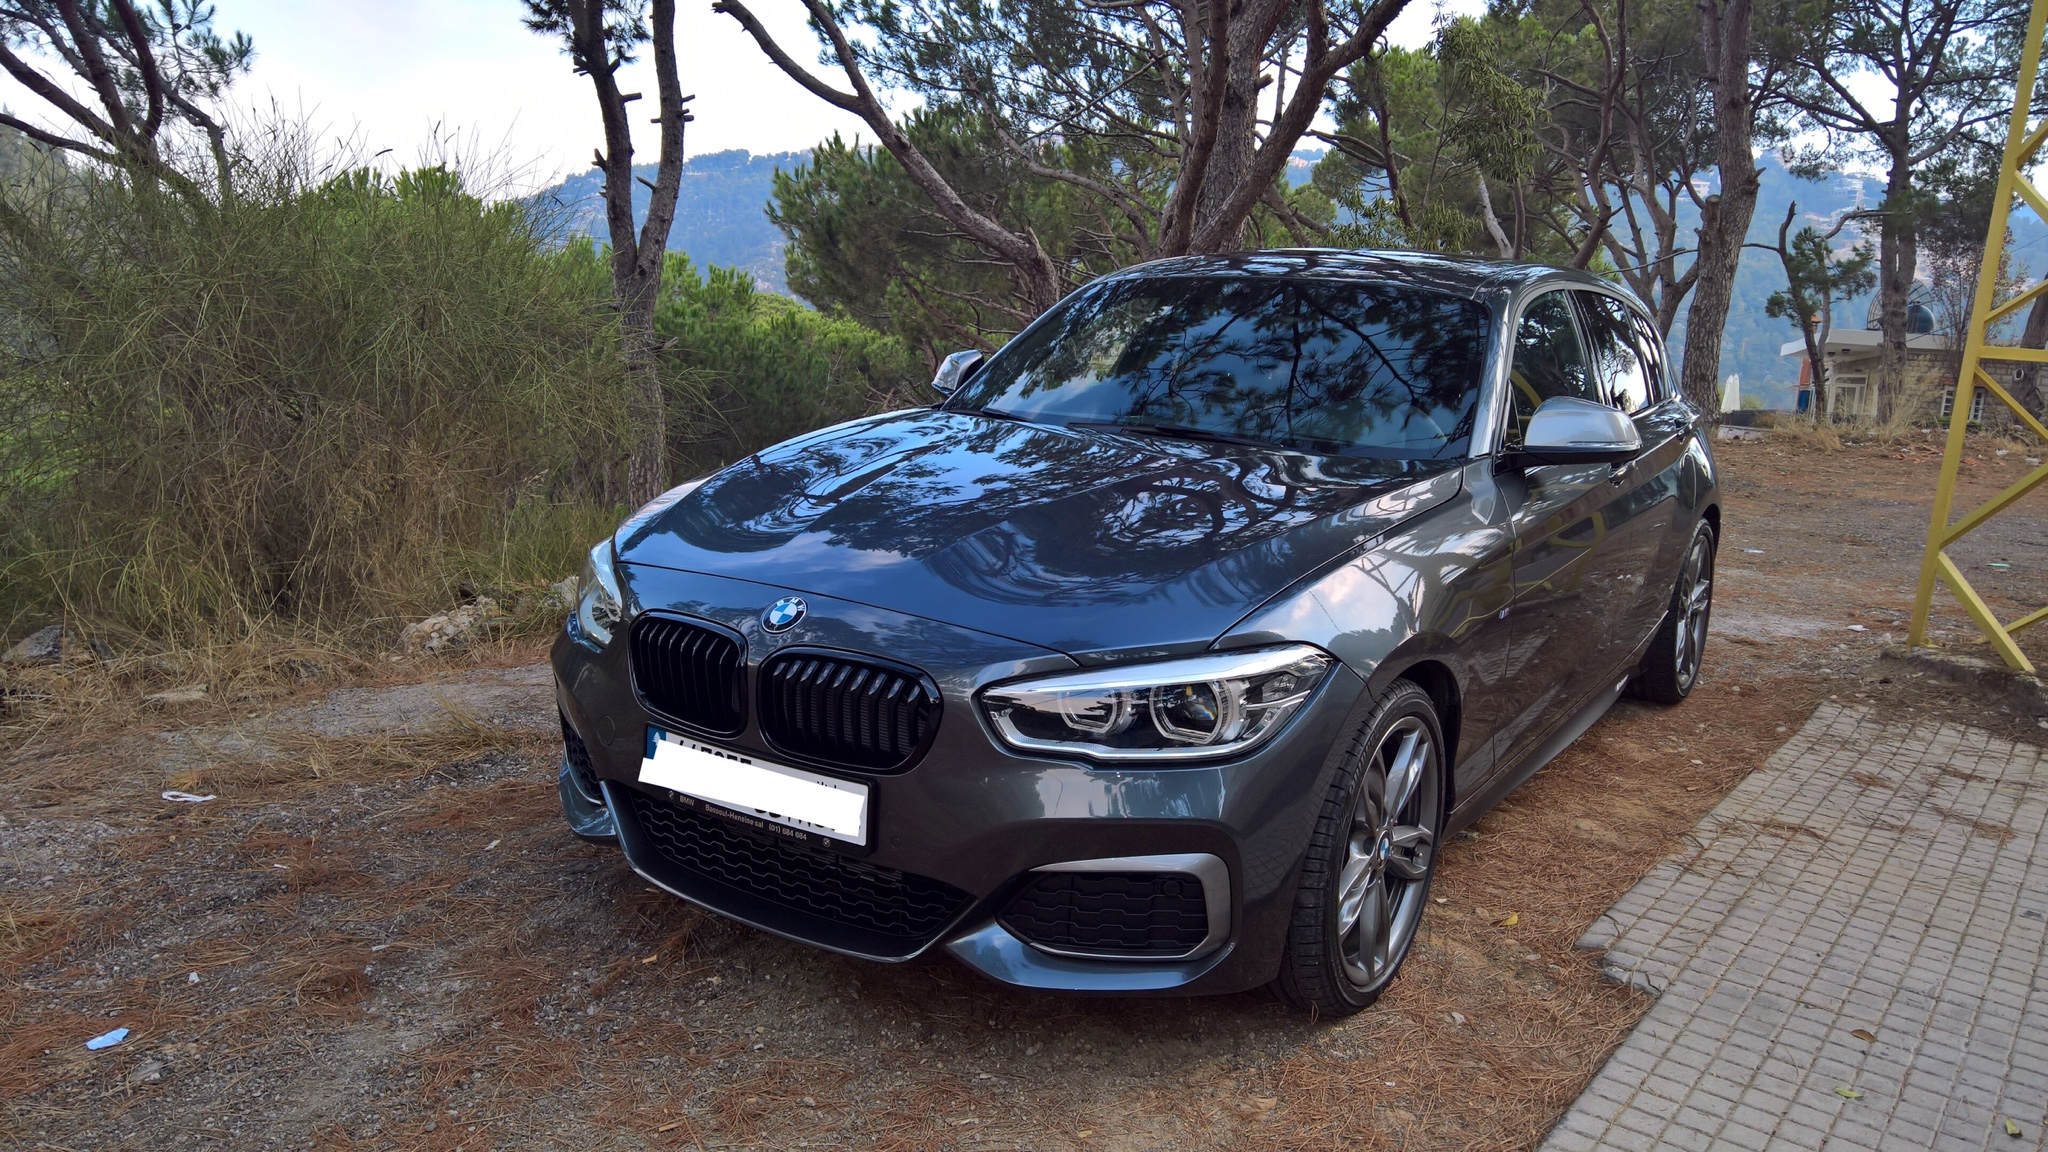 The M140i Photo Thread Page 39 Babybmw Net